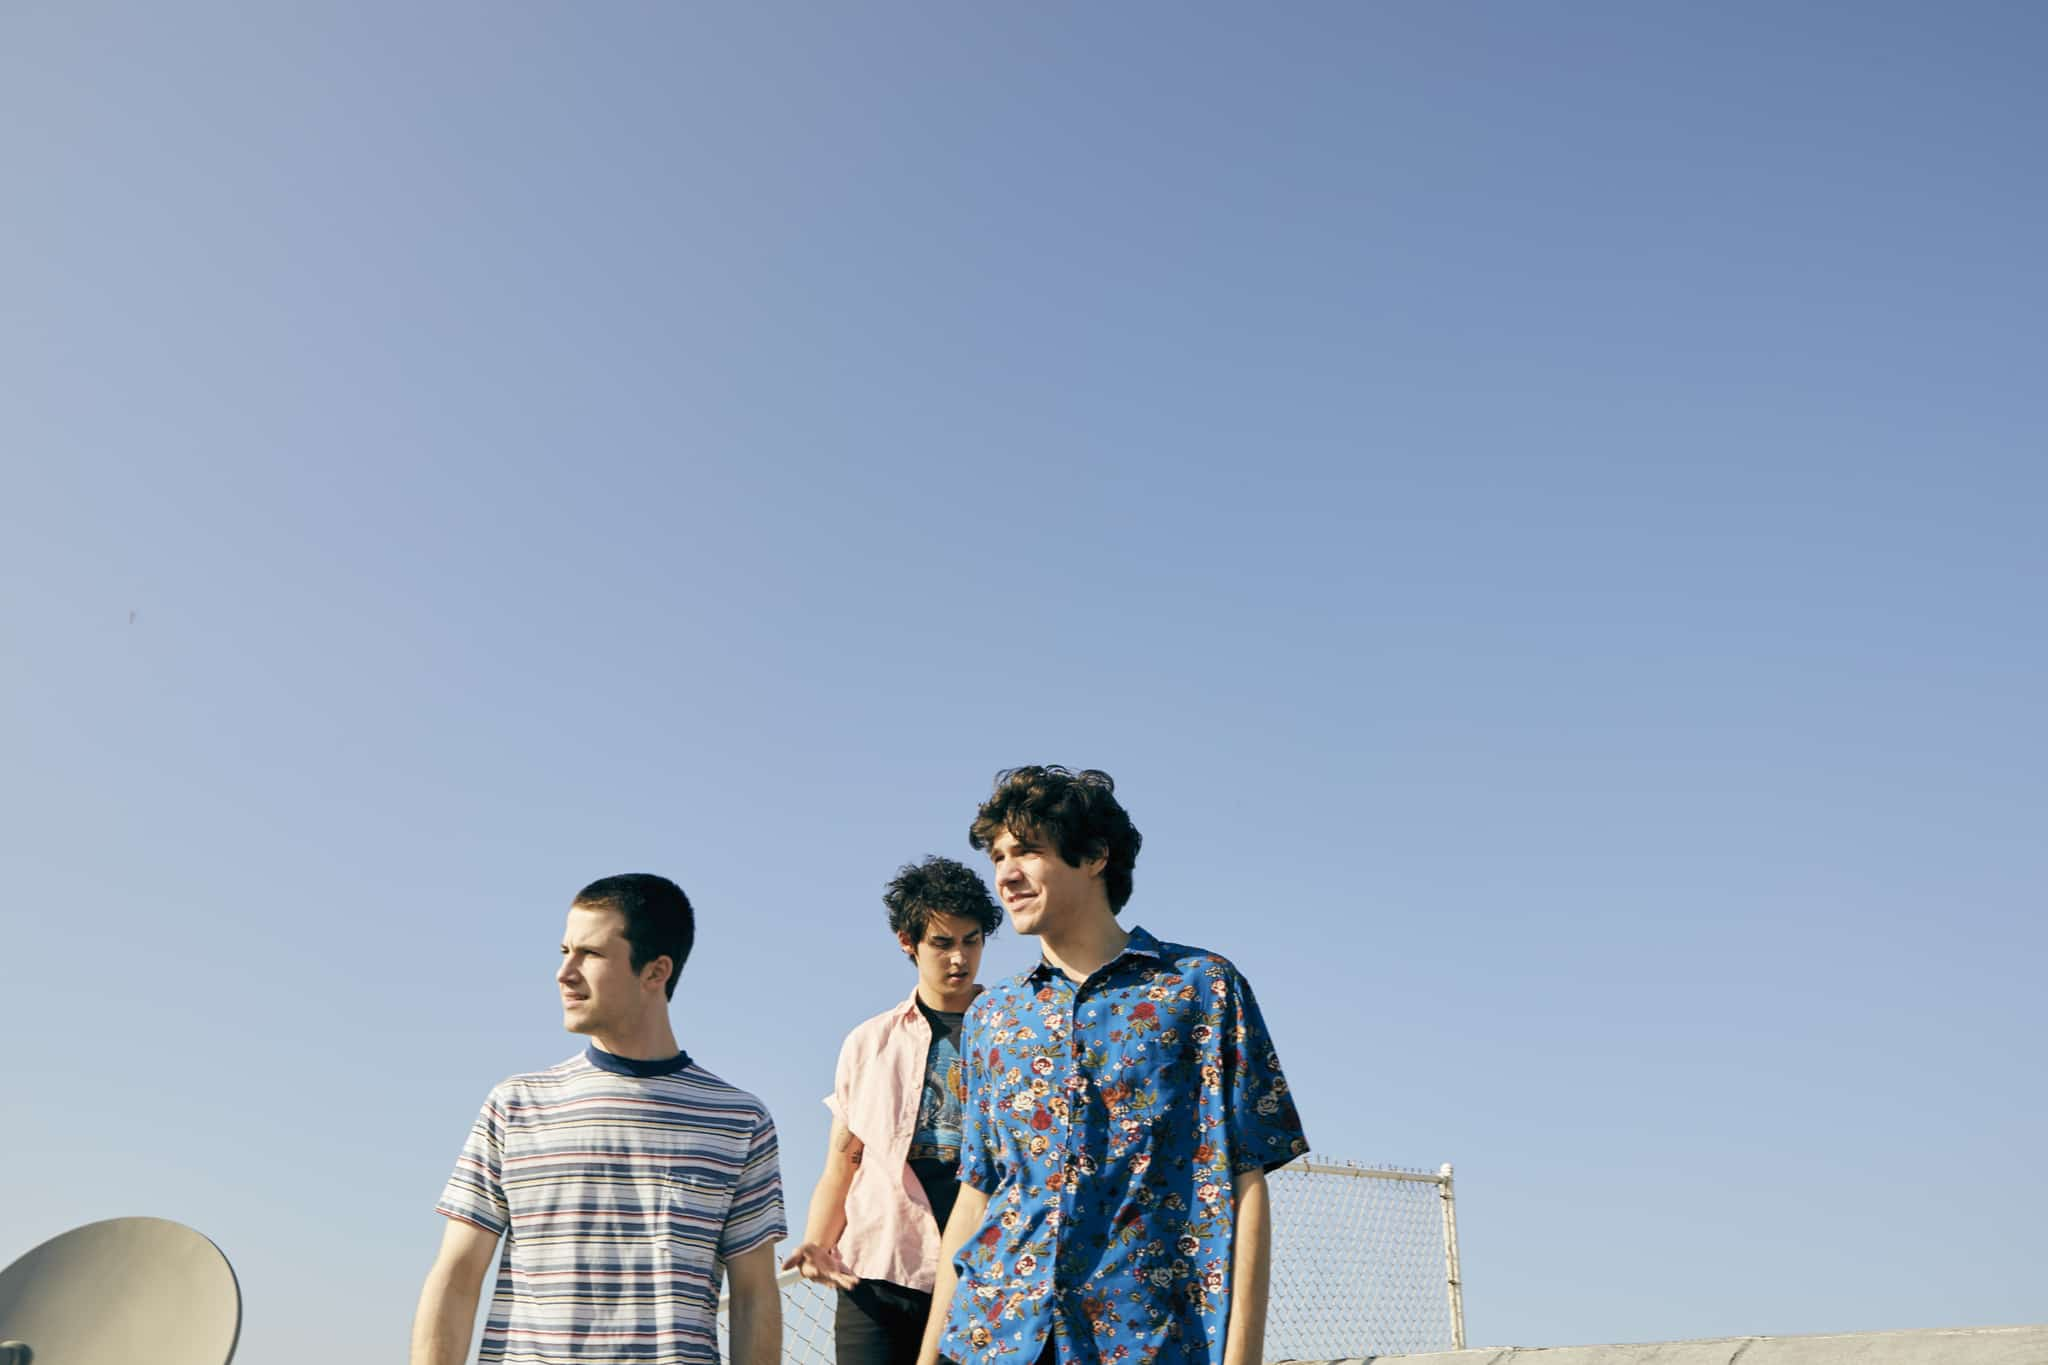 Wallows Approved Press Photo #8